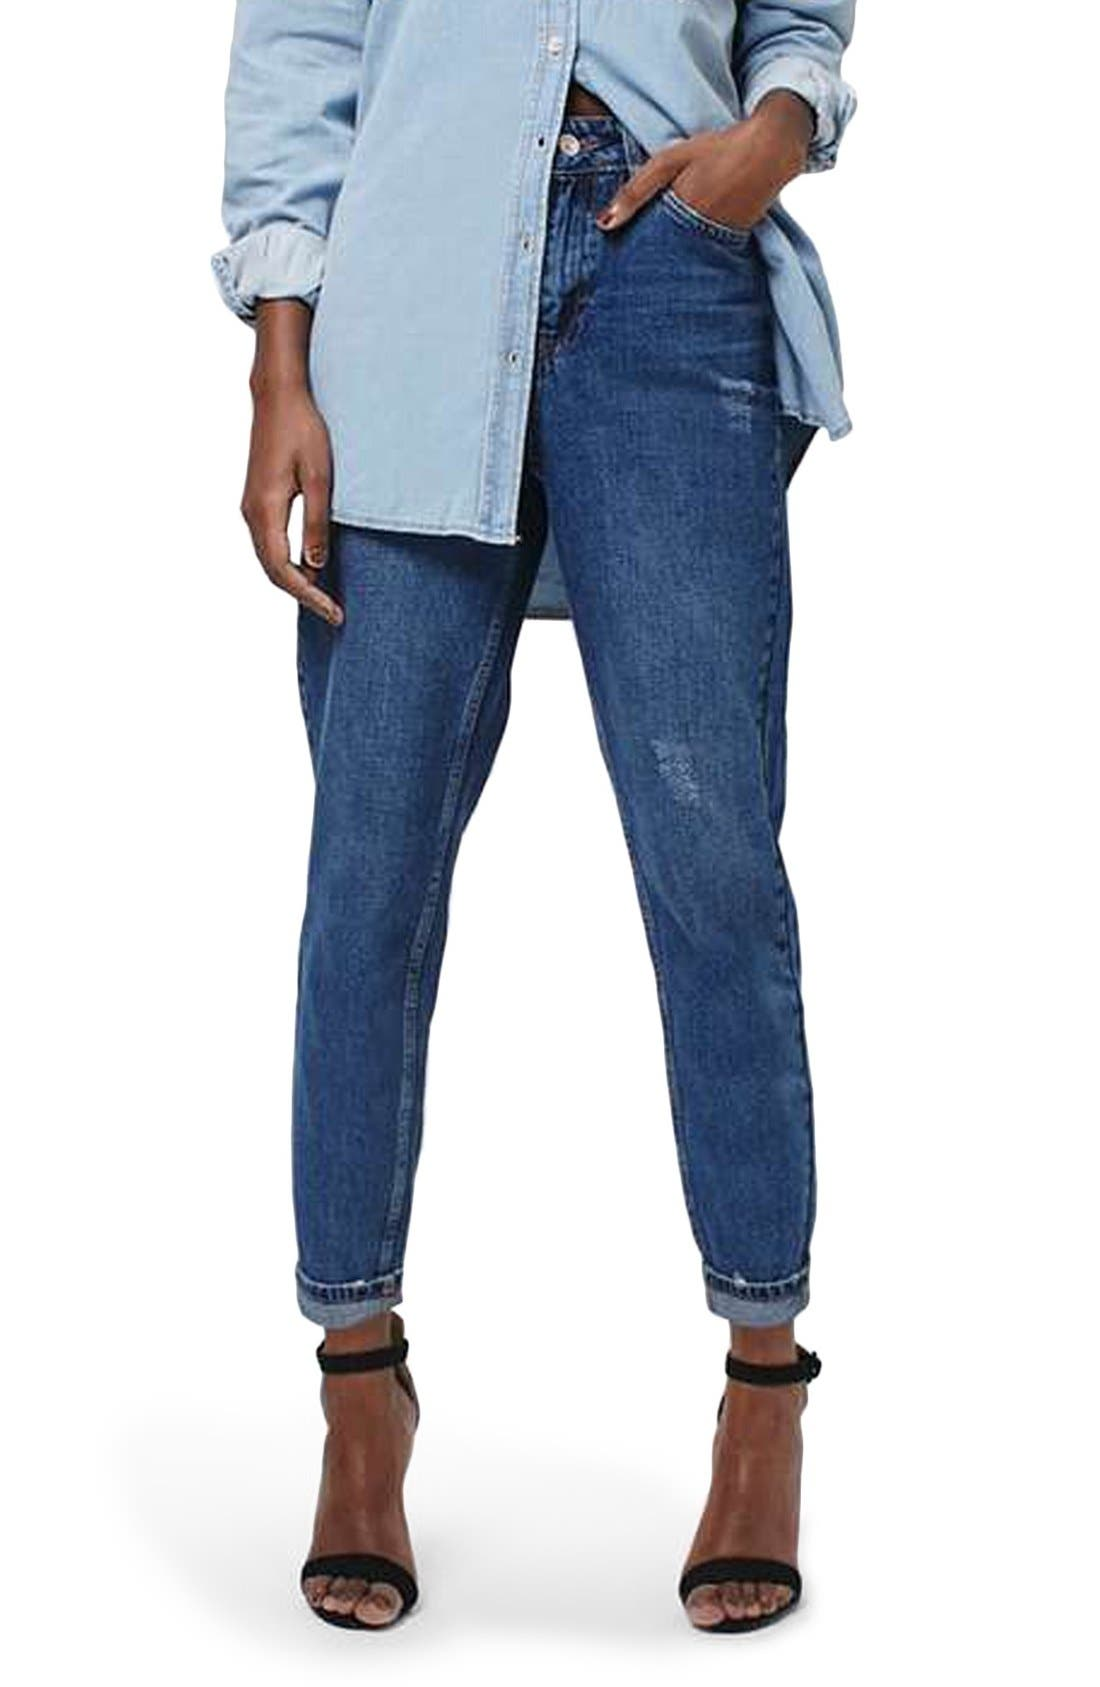 TOPSHOP, 'Mom' High Rise Jeans, Main thumbnail 1, color, 400